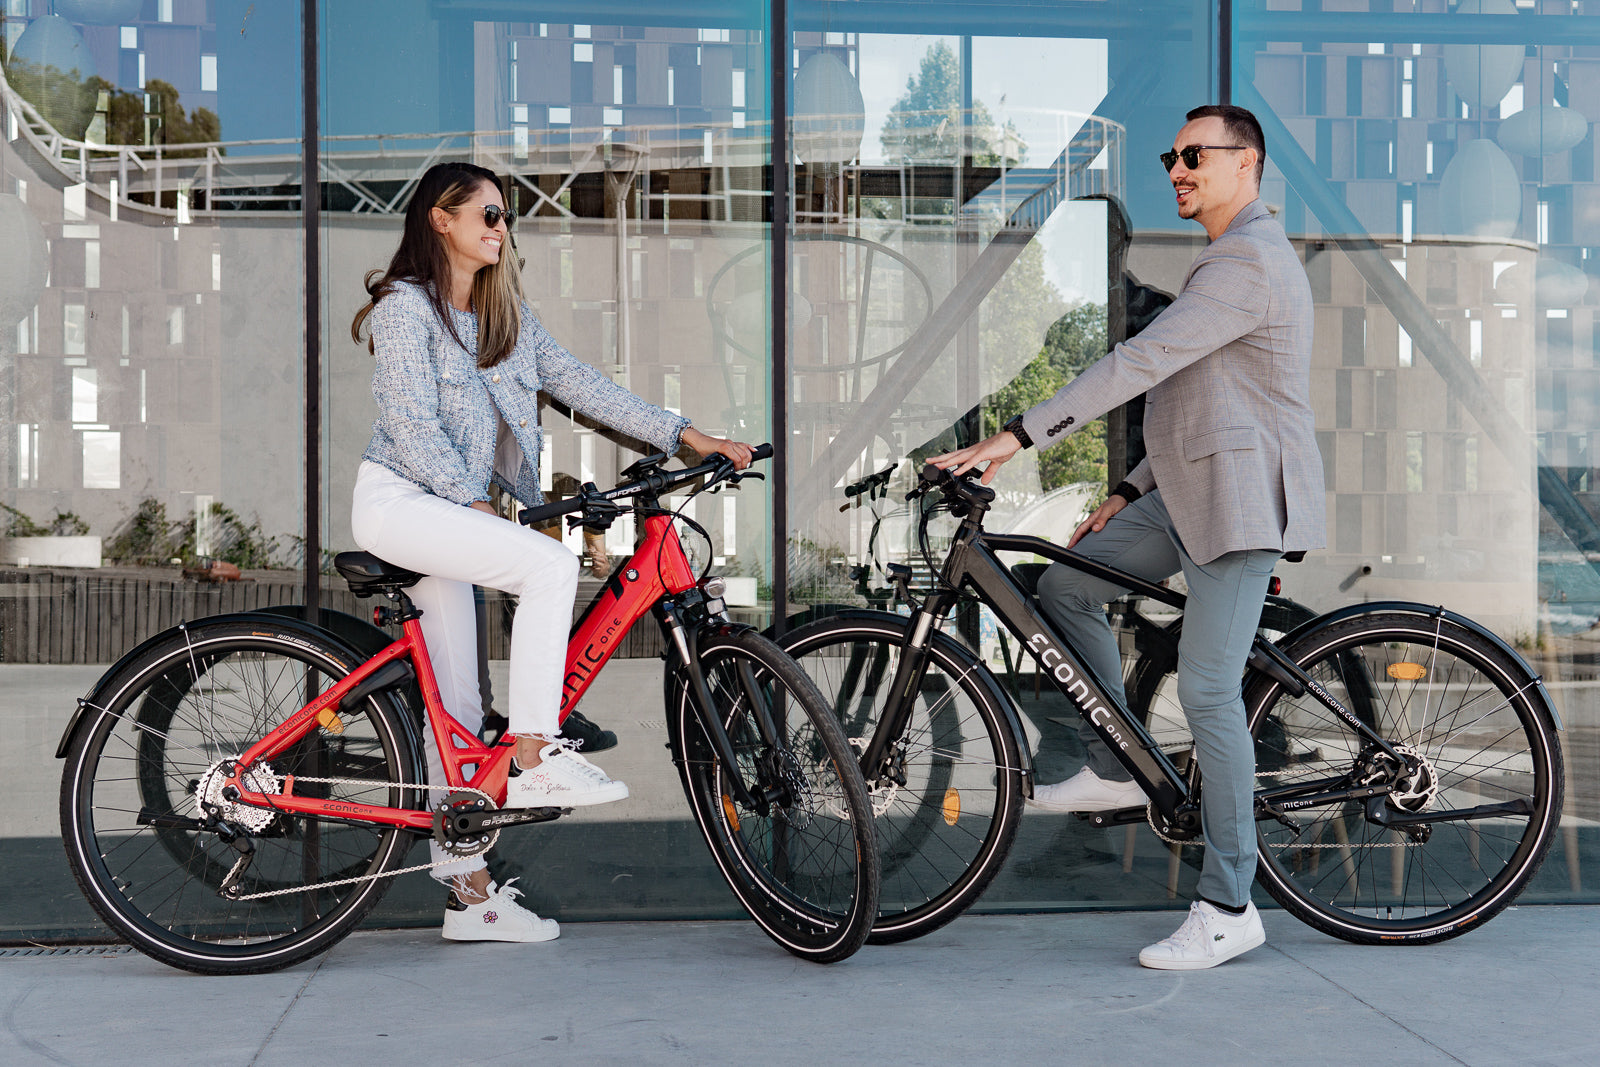 Why an e-bike?